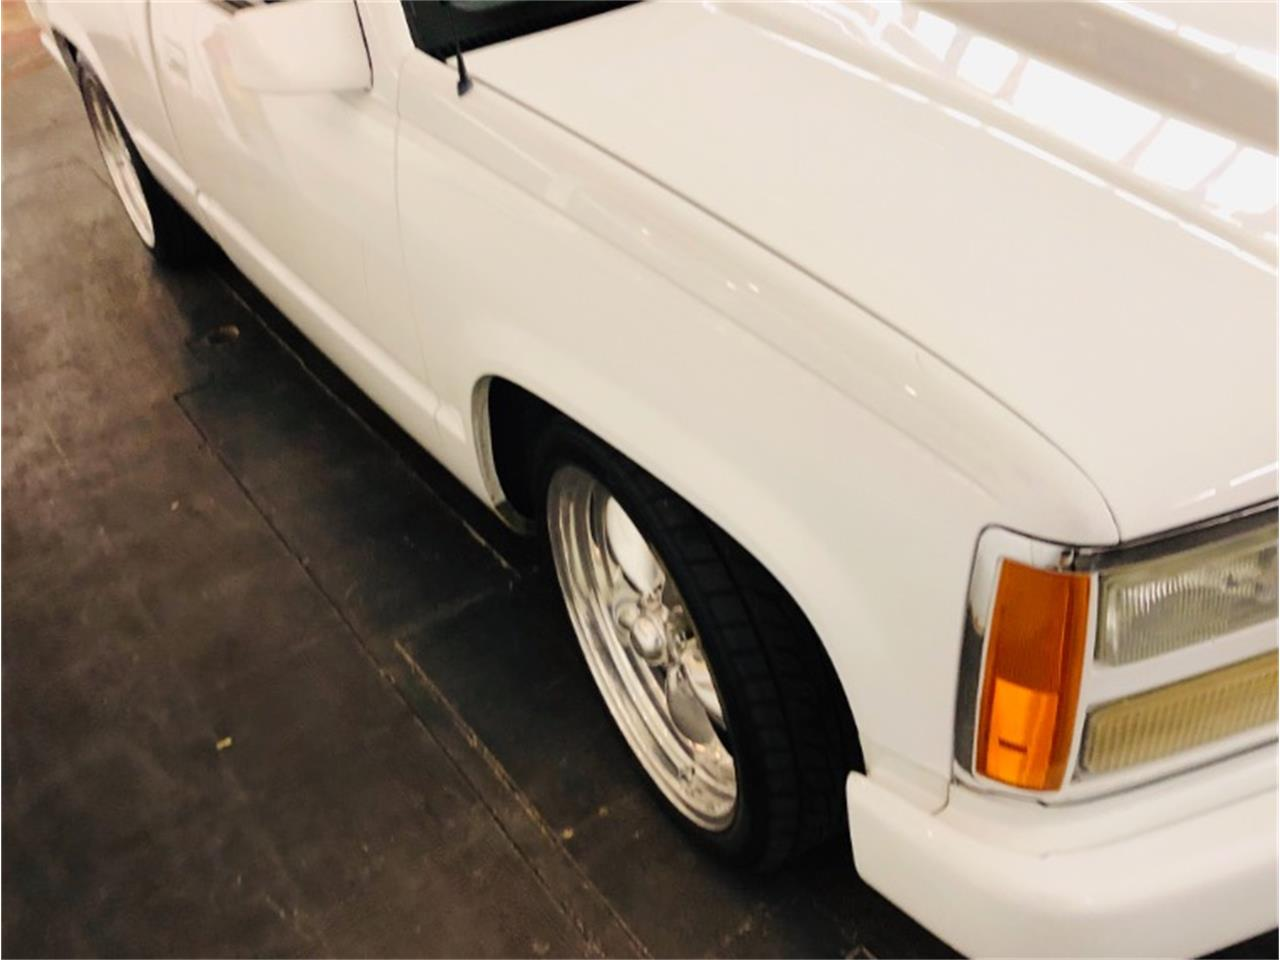 1990 GMC Pickup for sale in Mundelein, IL – photo 17